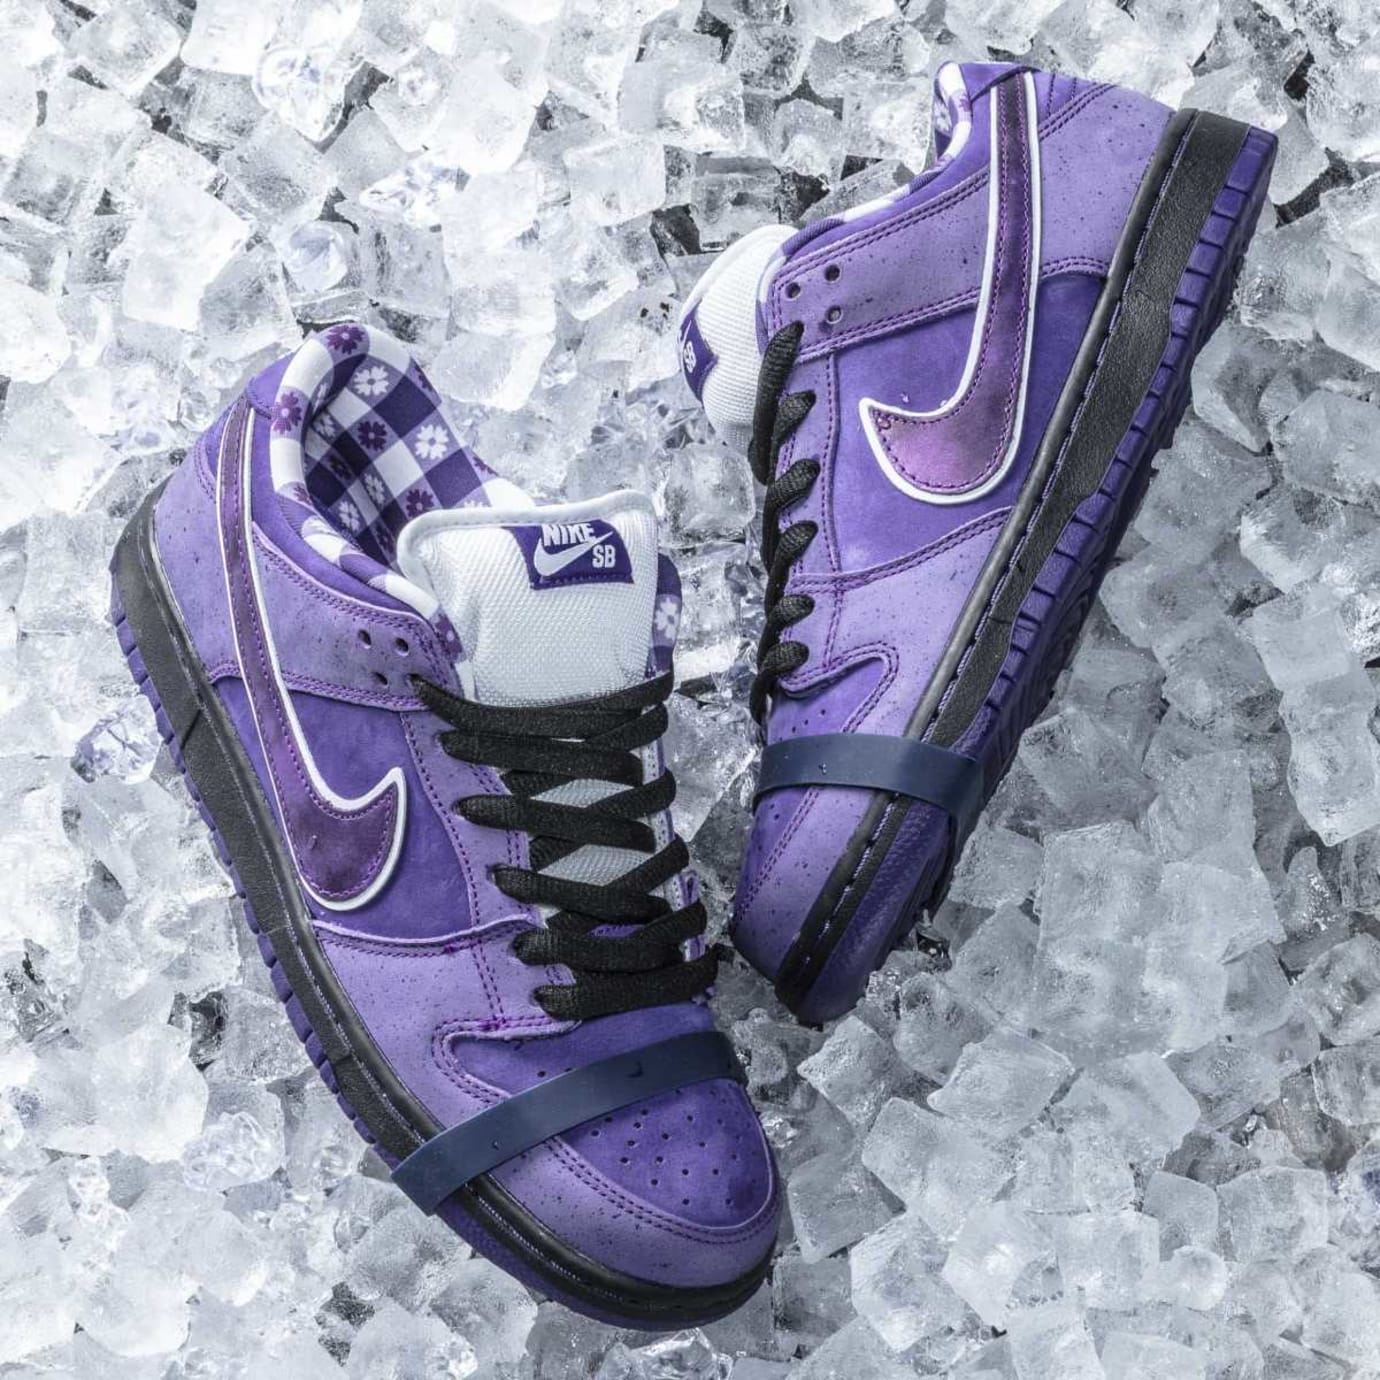 5c6967145e68 Image via CNCPTS Concepts x Nike SB Dunk Low Purple Lobster Release Date  Detail